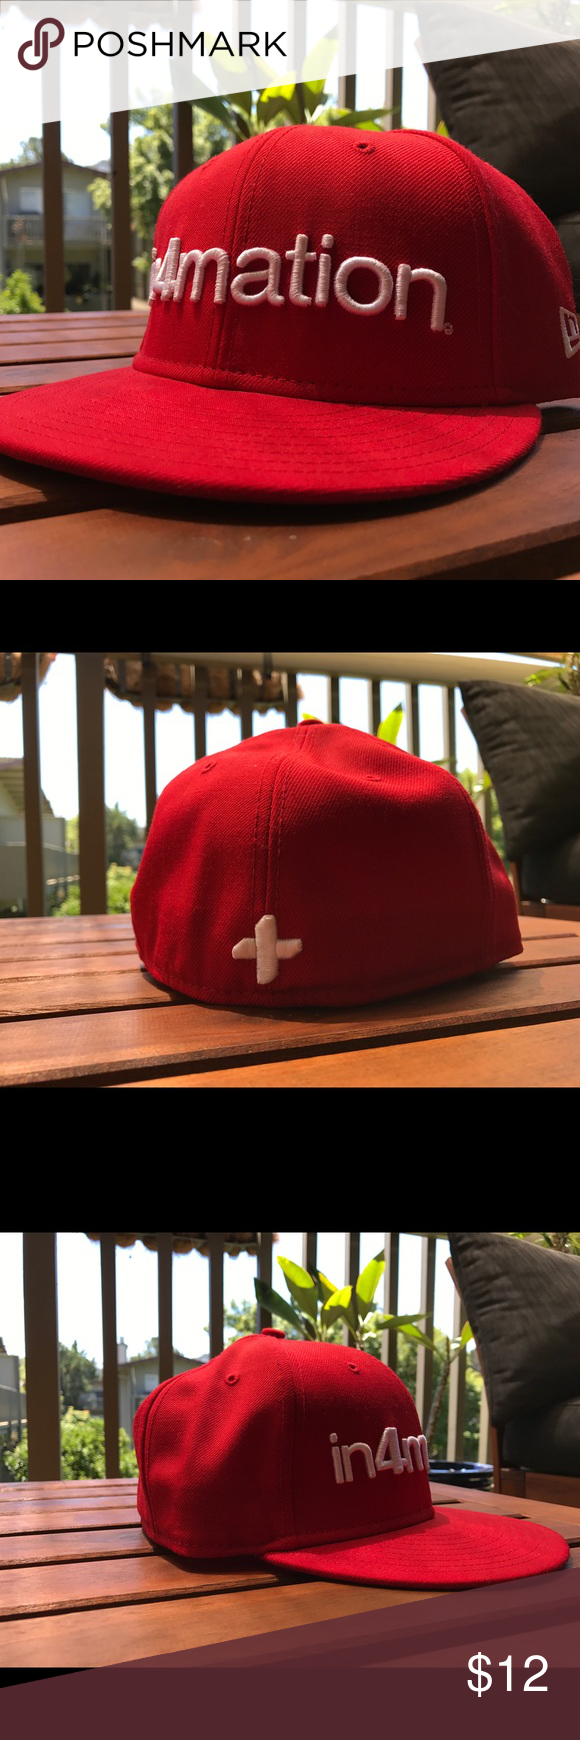 In4mation New Era Fitted Cap Clean and never worn red New Era 59Fifty In4mation fitted. Excellent condition! Accessories Hats